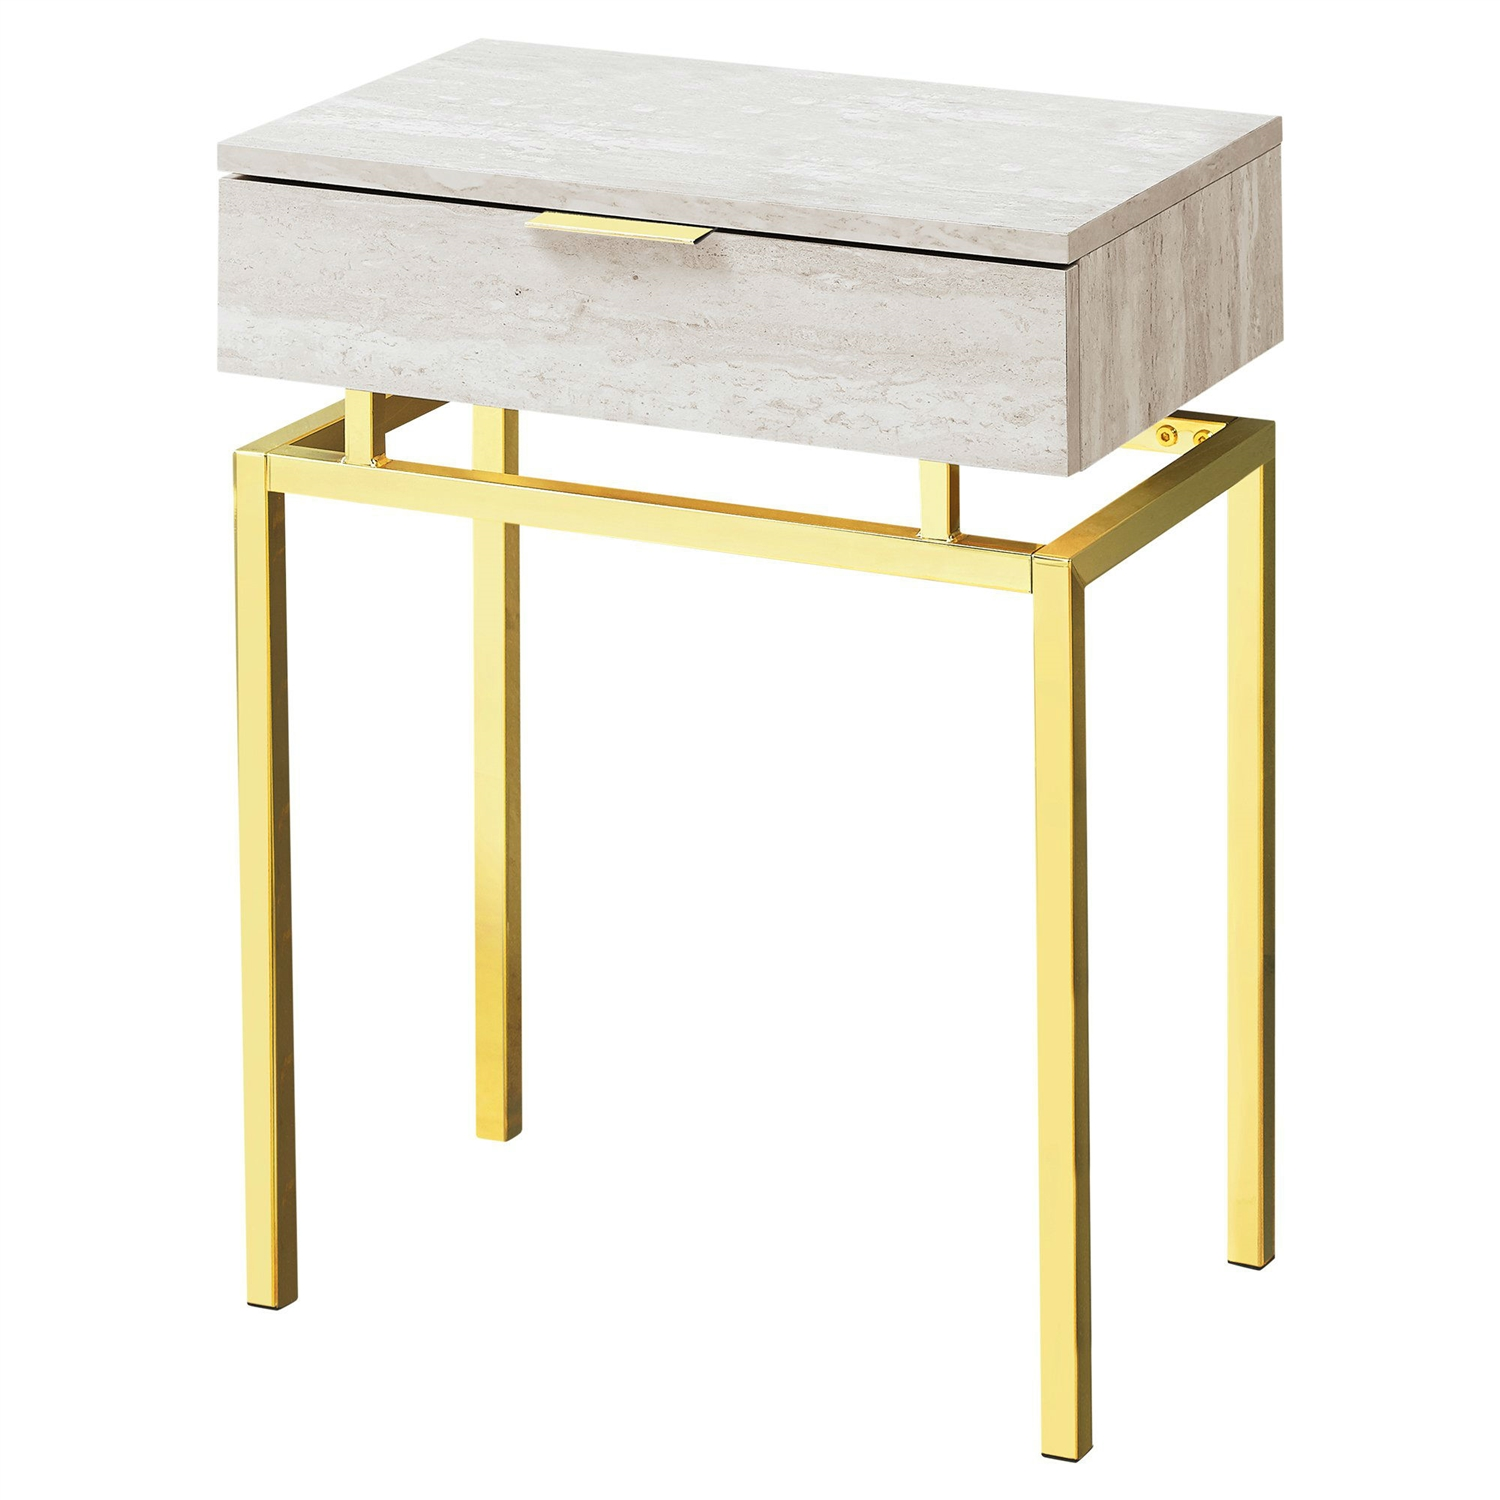 Picture of: 24in Modern End Table 1 Drawer Nightstand Beige Marble Gold Legs Fastfurnishings Com